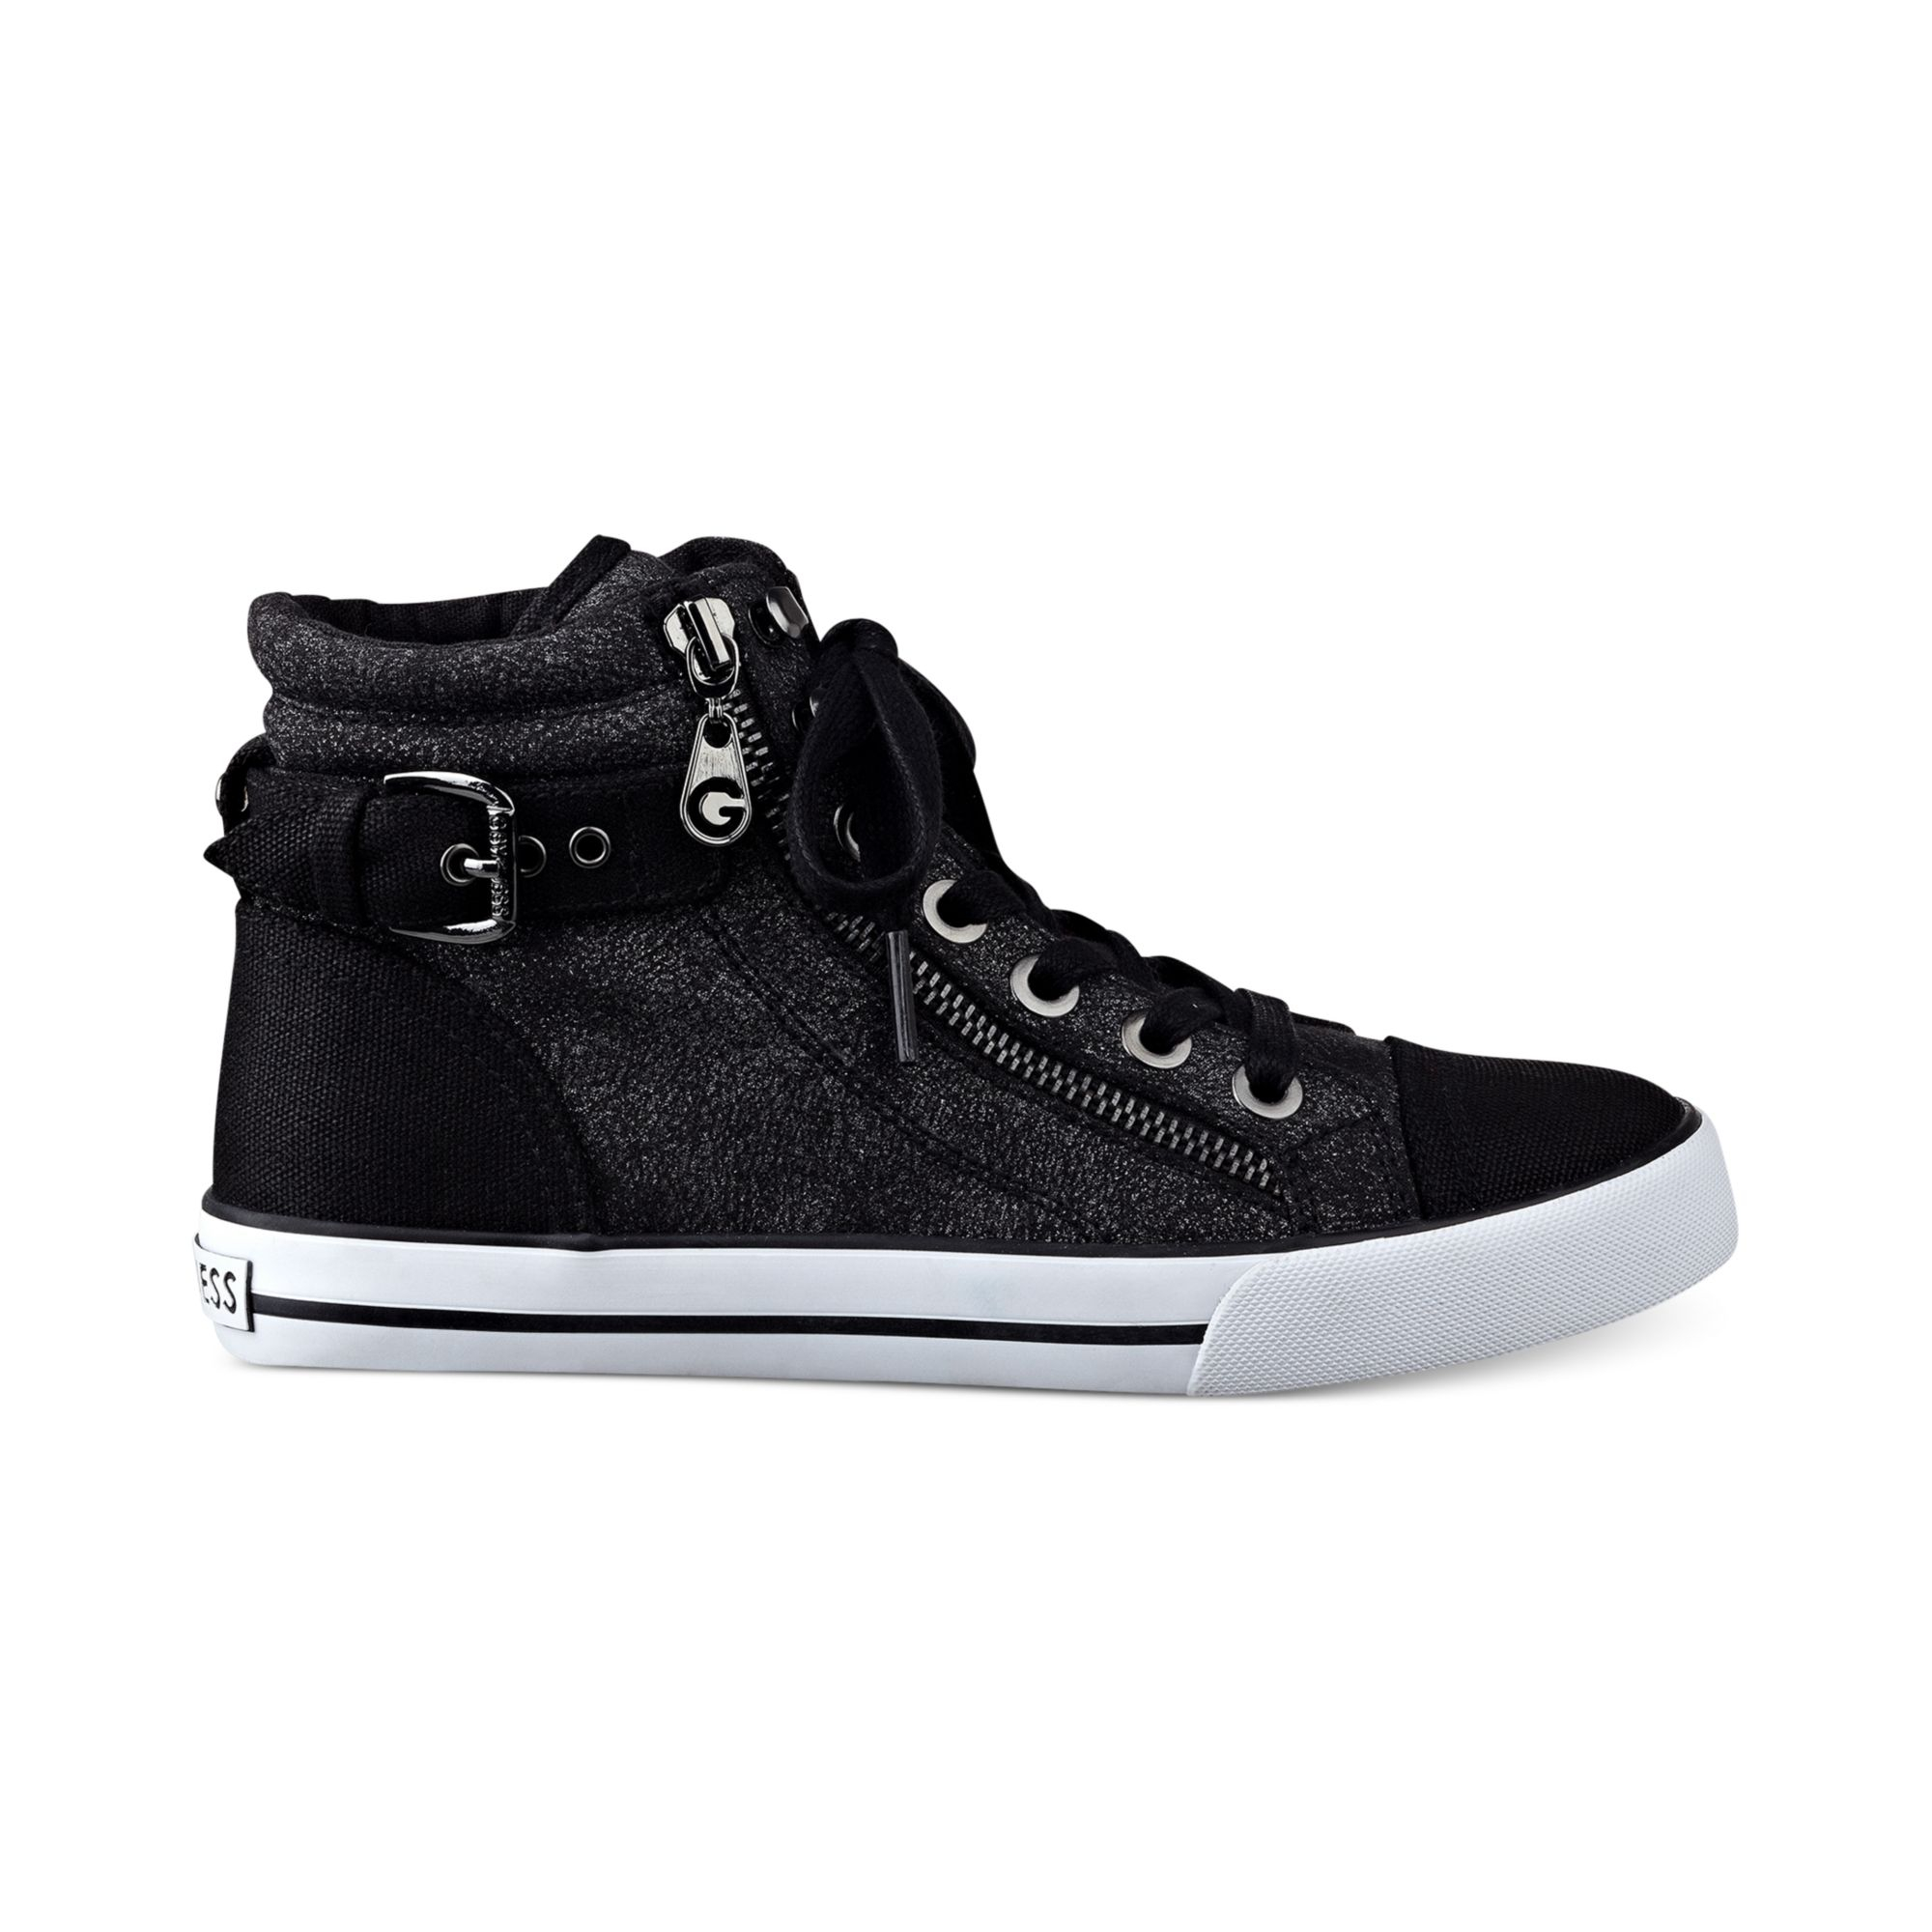 g by guess women 39 s olama high top sneakers in black lyst. Black Bedroom Furniture Sets. Home Design Ideas